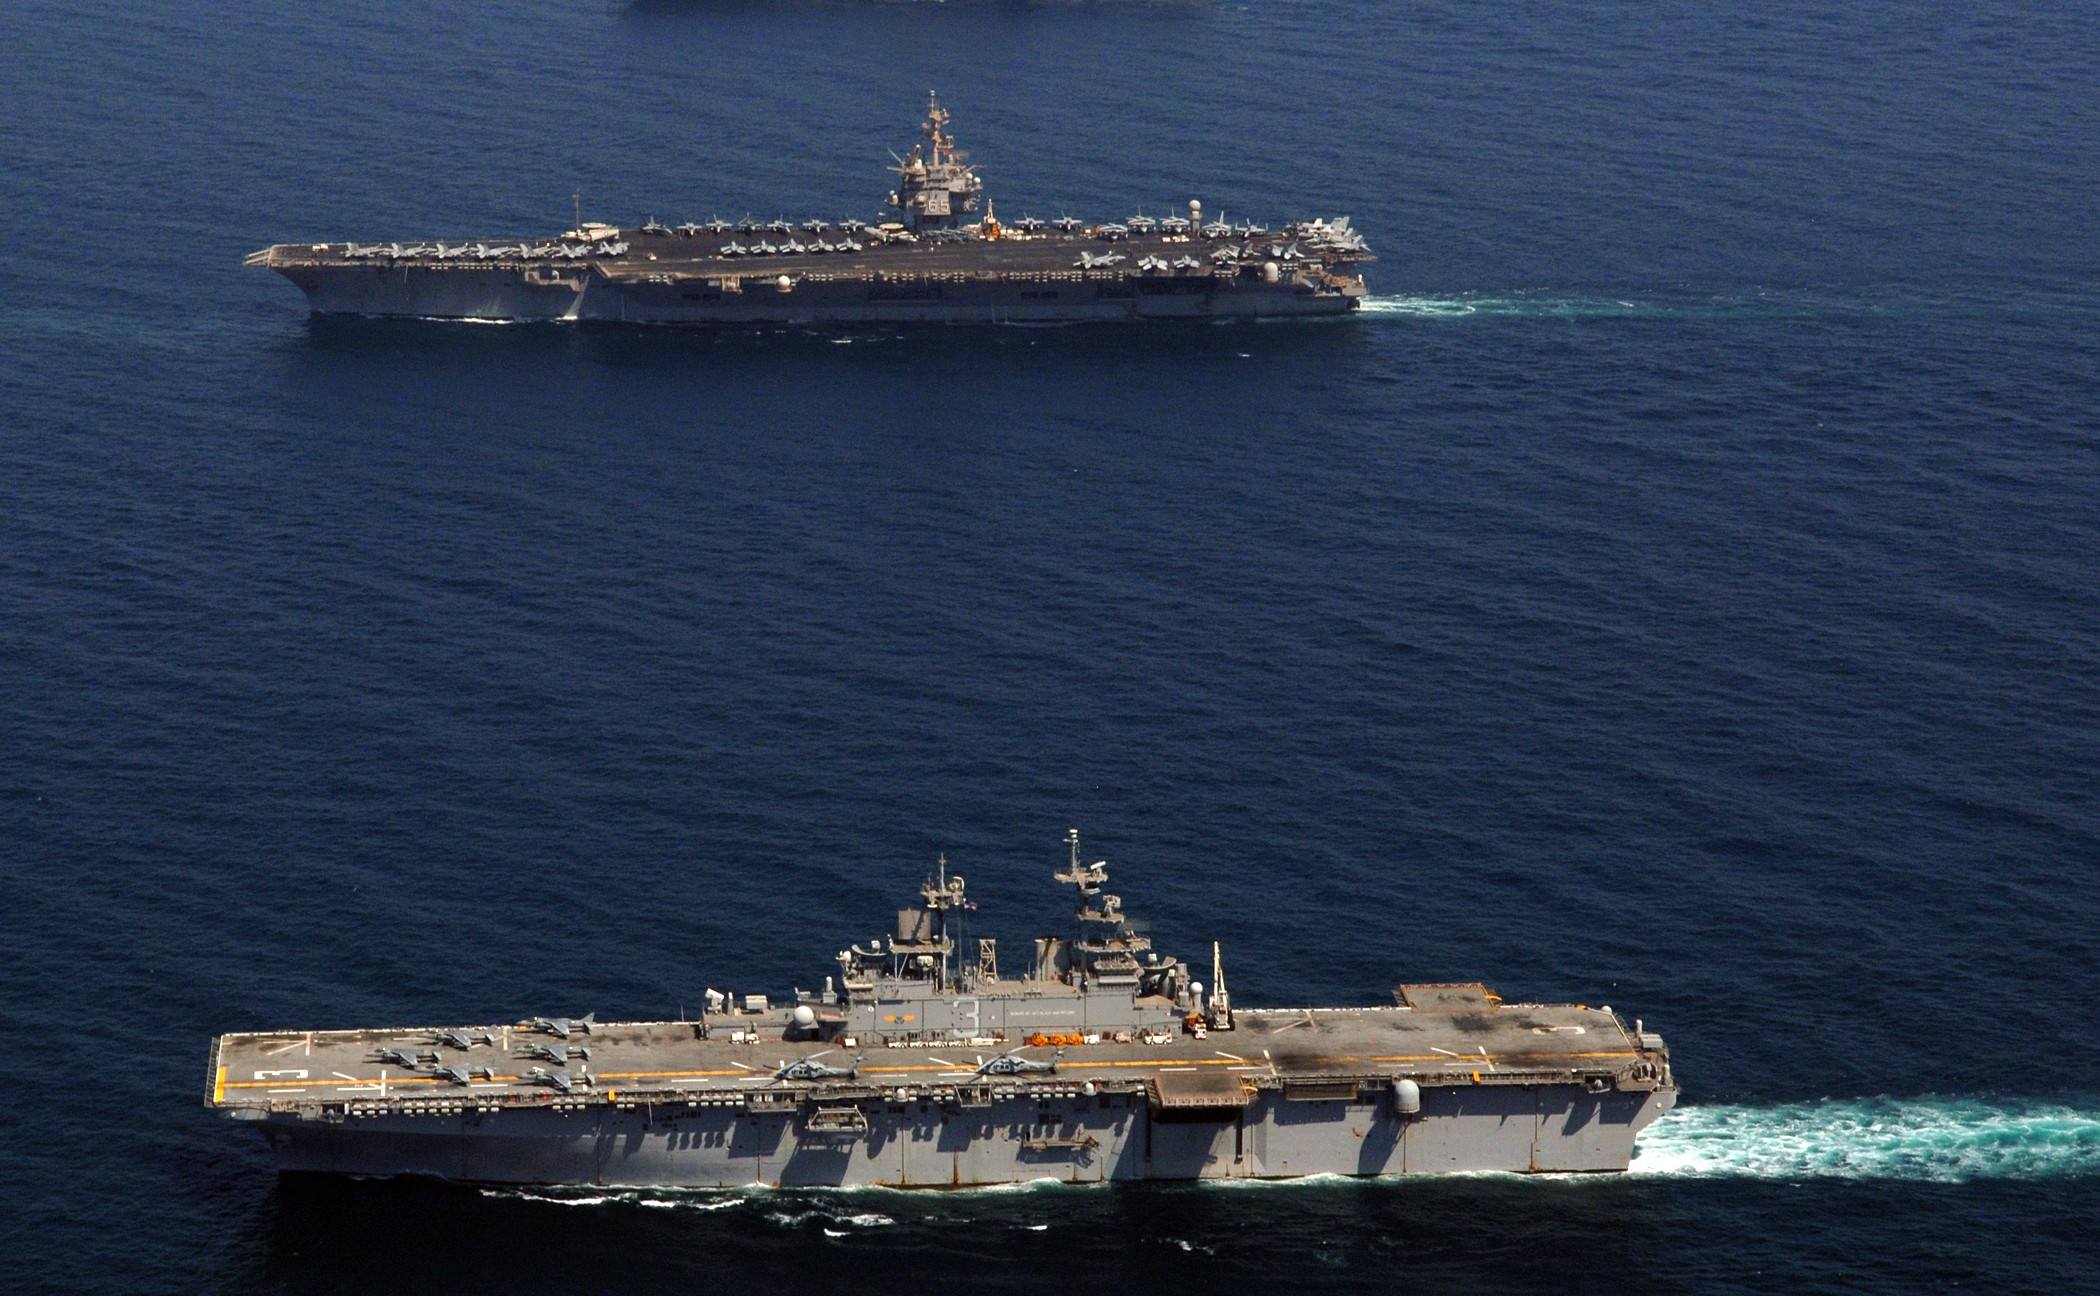 070928-N-5928K-011 PERSIAN GULF (Sept. 28, 2007) - Nuclear-powered aircraft carrier USS Enterprise (CVN 65) and amphibious assault ship USS Kearsarge (LHD 3) and USS Bonhomme Richard (LHD 6) transit alongside each other in the Persian Gulf. Enterprise and embarked Carrier Air Wing (CVW) 1 are underway on a scheduled deployment. U.S. Navy photo by Mass Communication Specialist 3rd Class N.C. Kaylor (RELEASED)